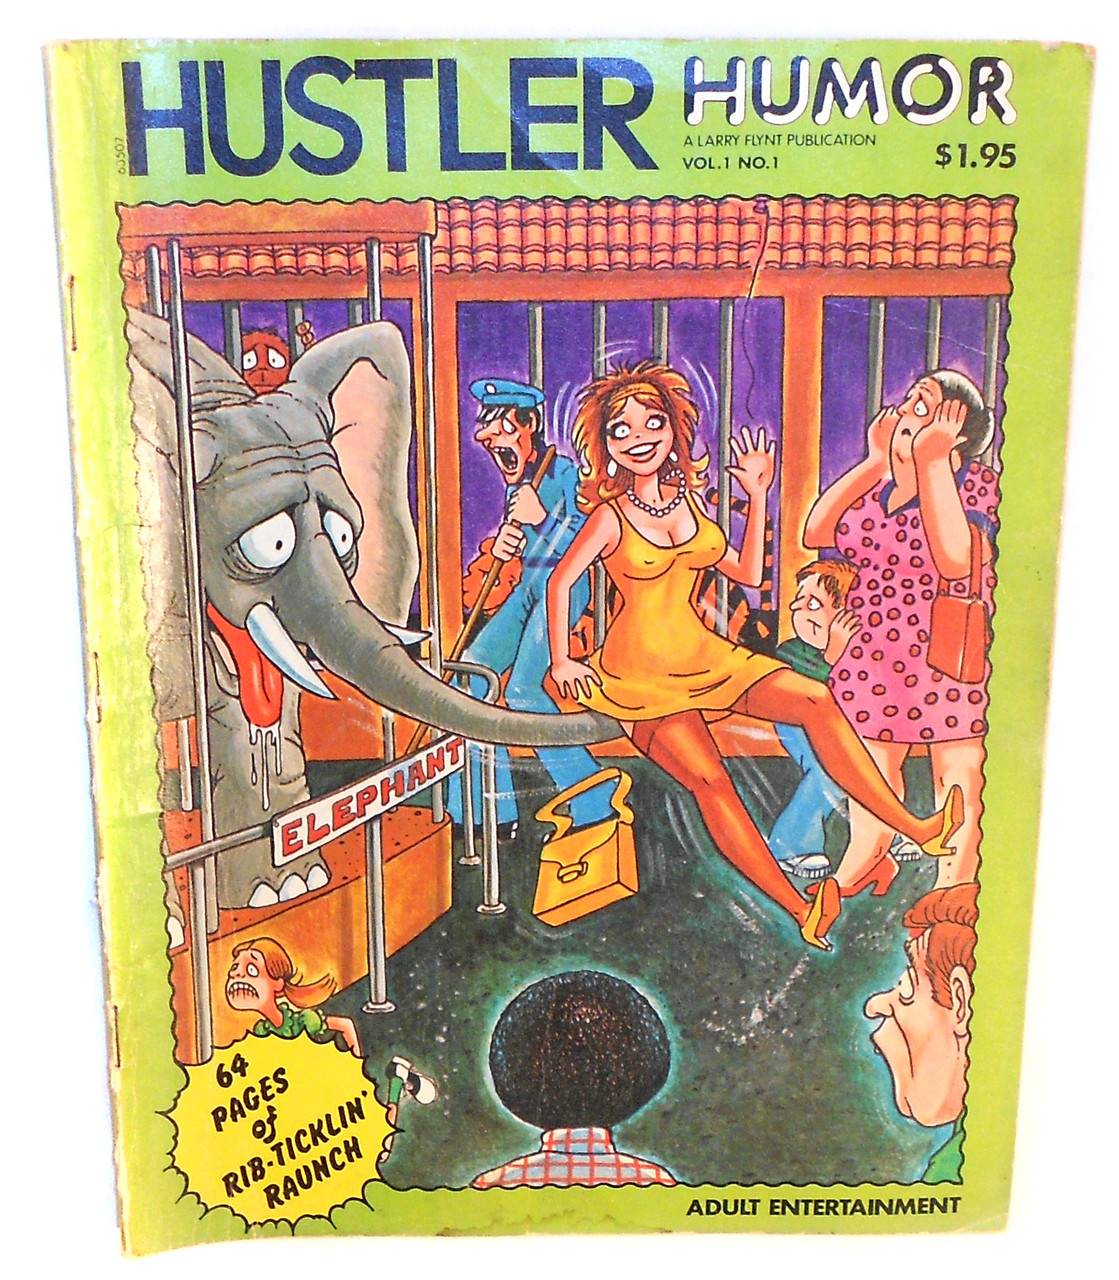 Adult Cartoon Comics 1978 hustler humor, vol. 1, no. 1 - men's adult cartoon comic magazine back  issue